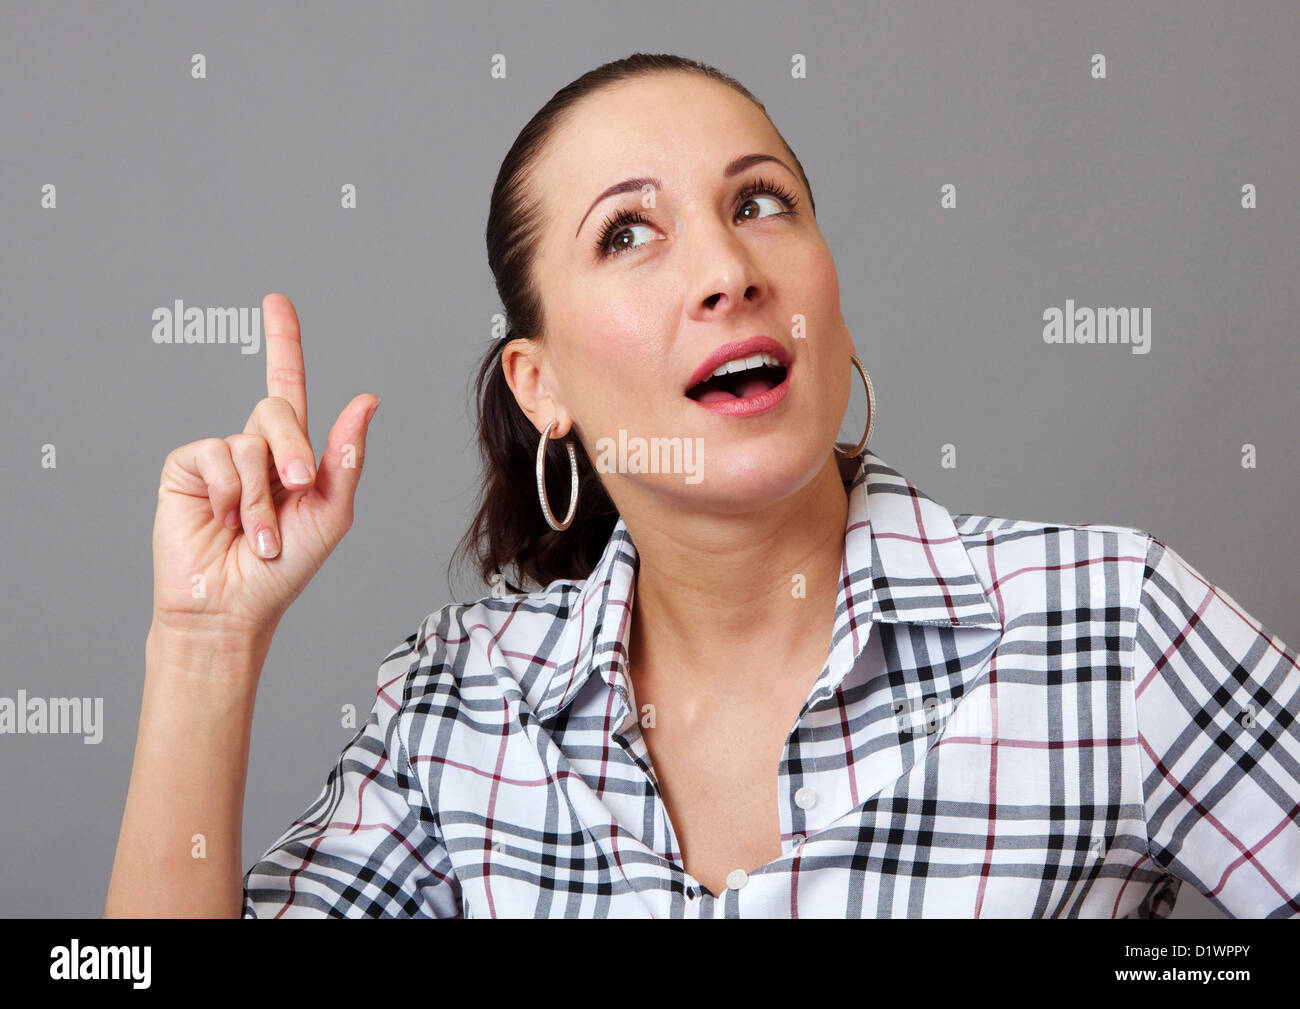 Woman with her finger in the air, having a great idea - Stock Image